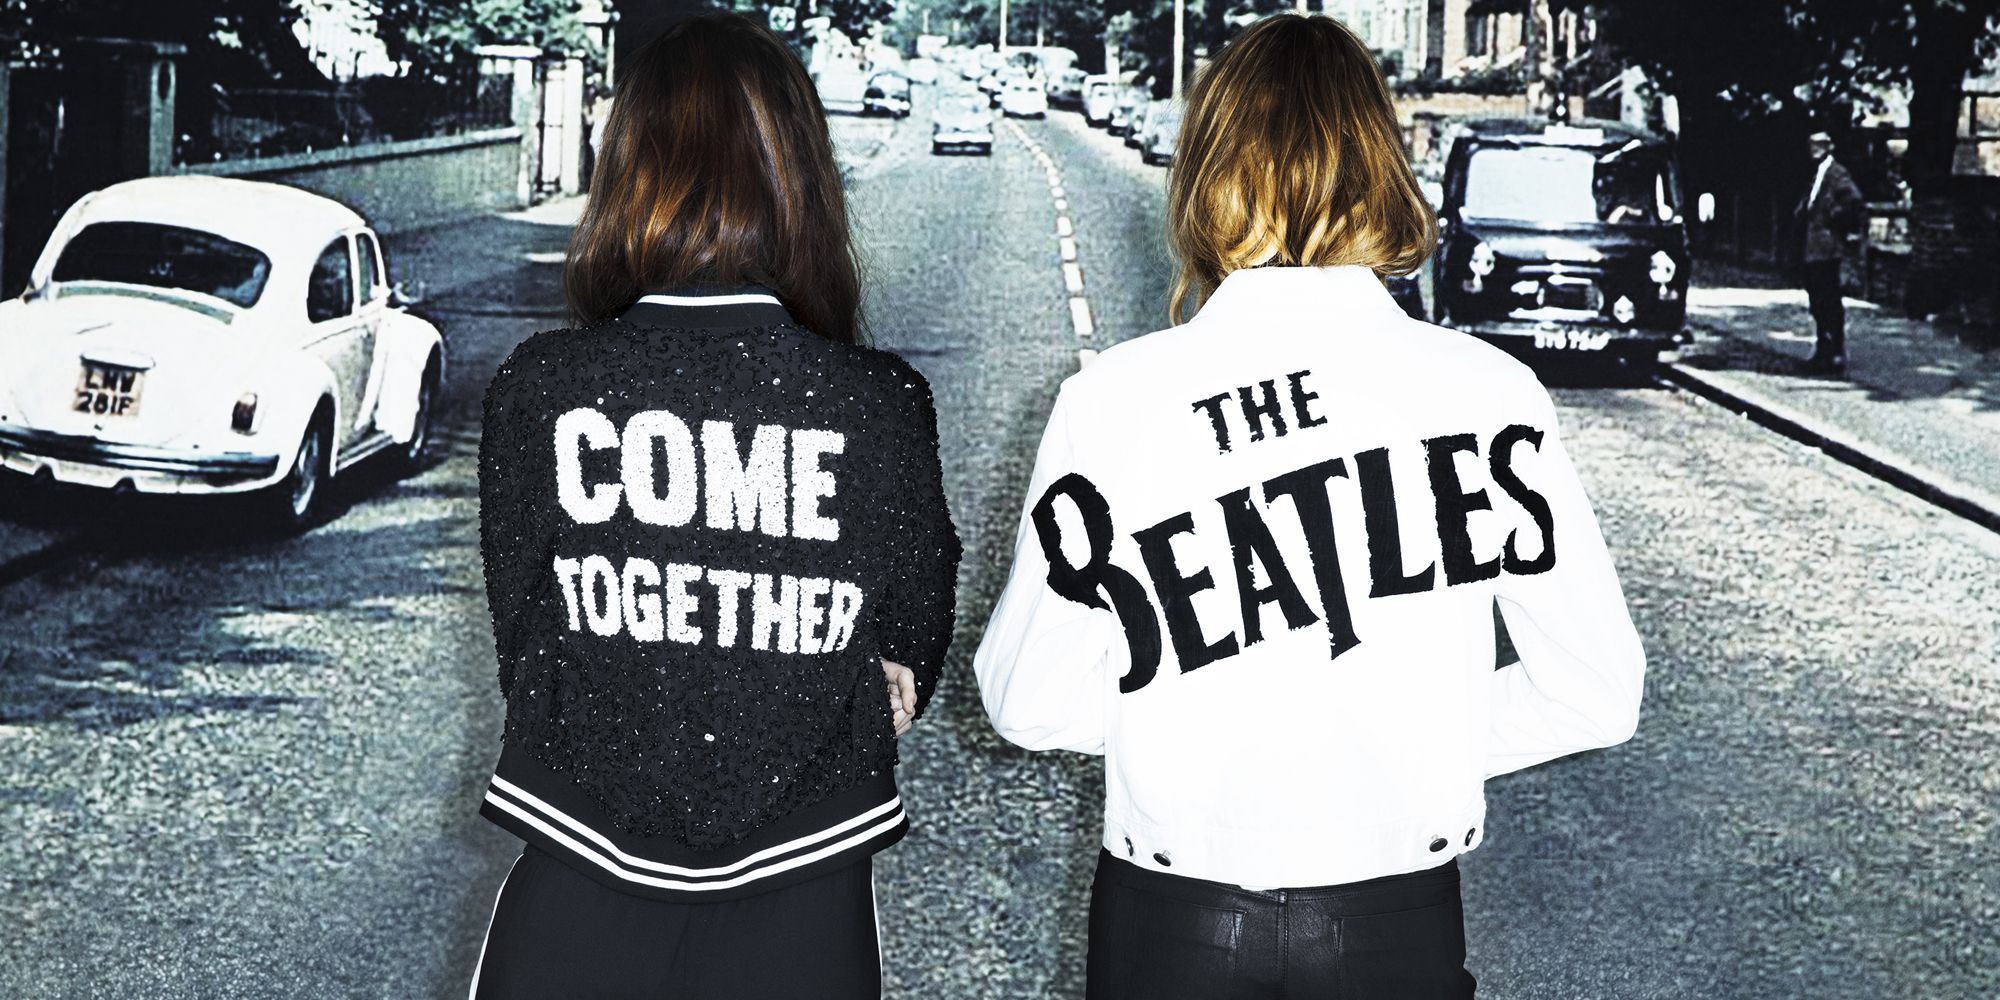 All You Need Is Alice + Olivia's The Beatles Collection